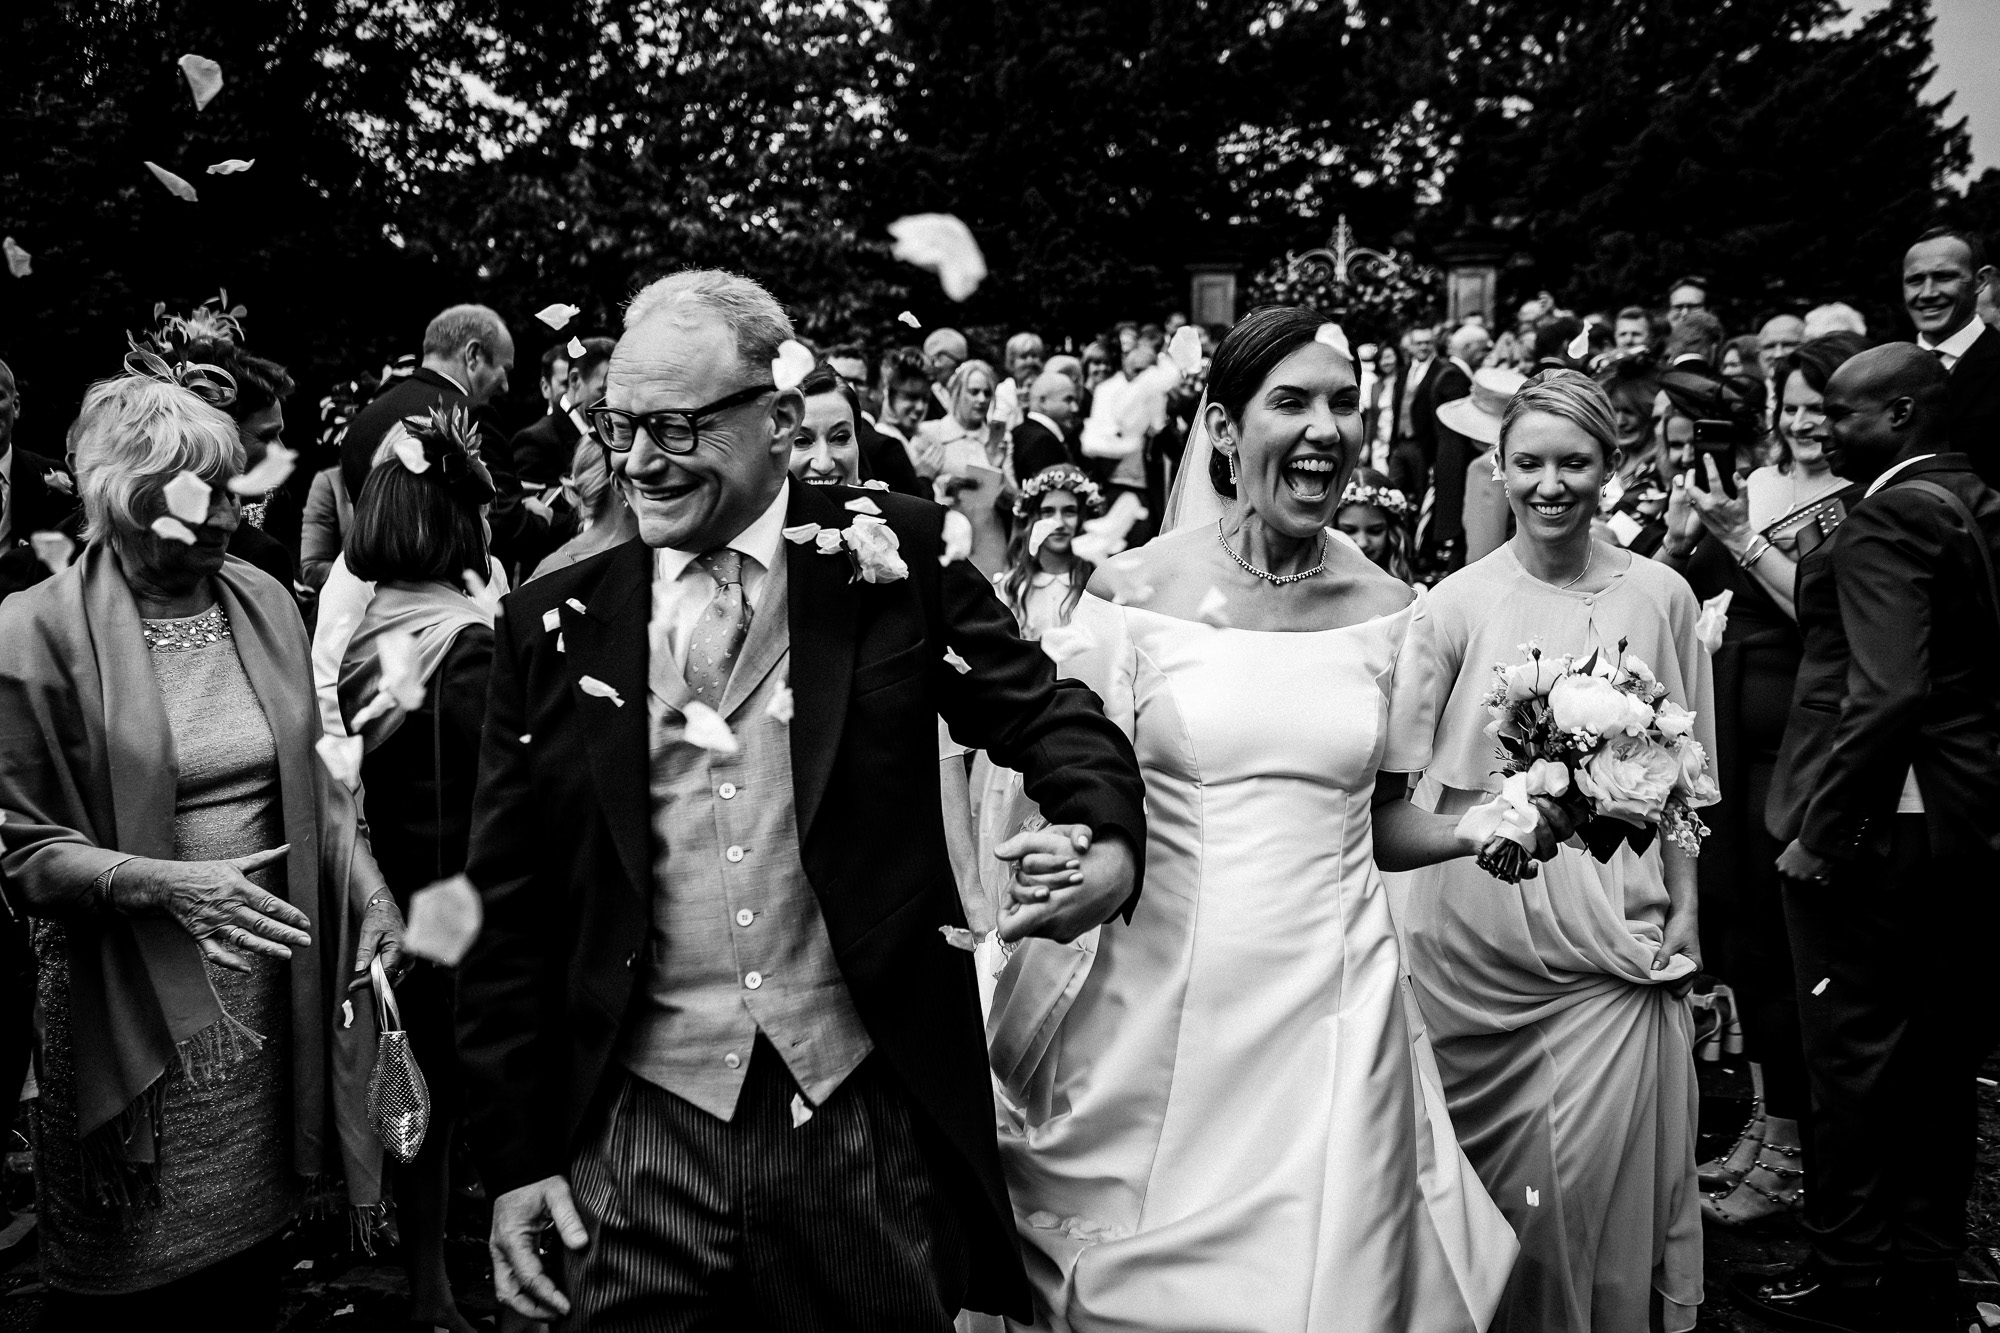 Cheshire wedding at home wedding photography (25 of 49).jpg